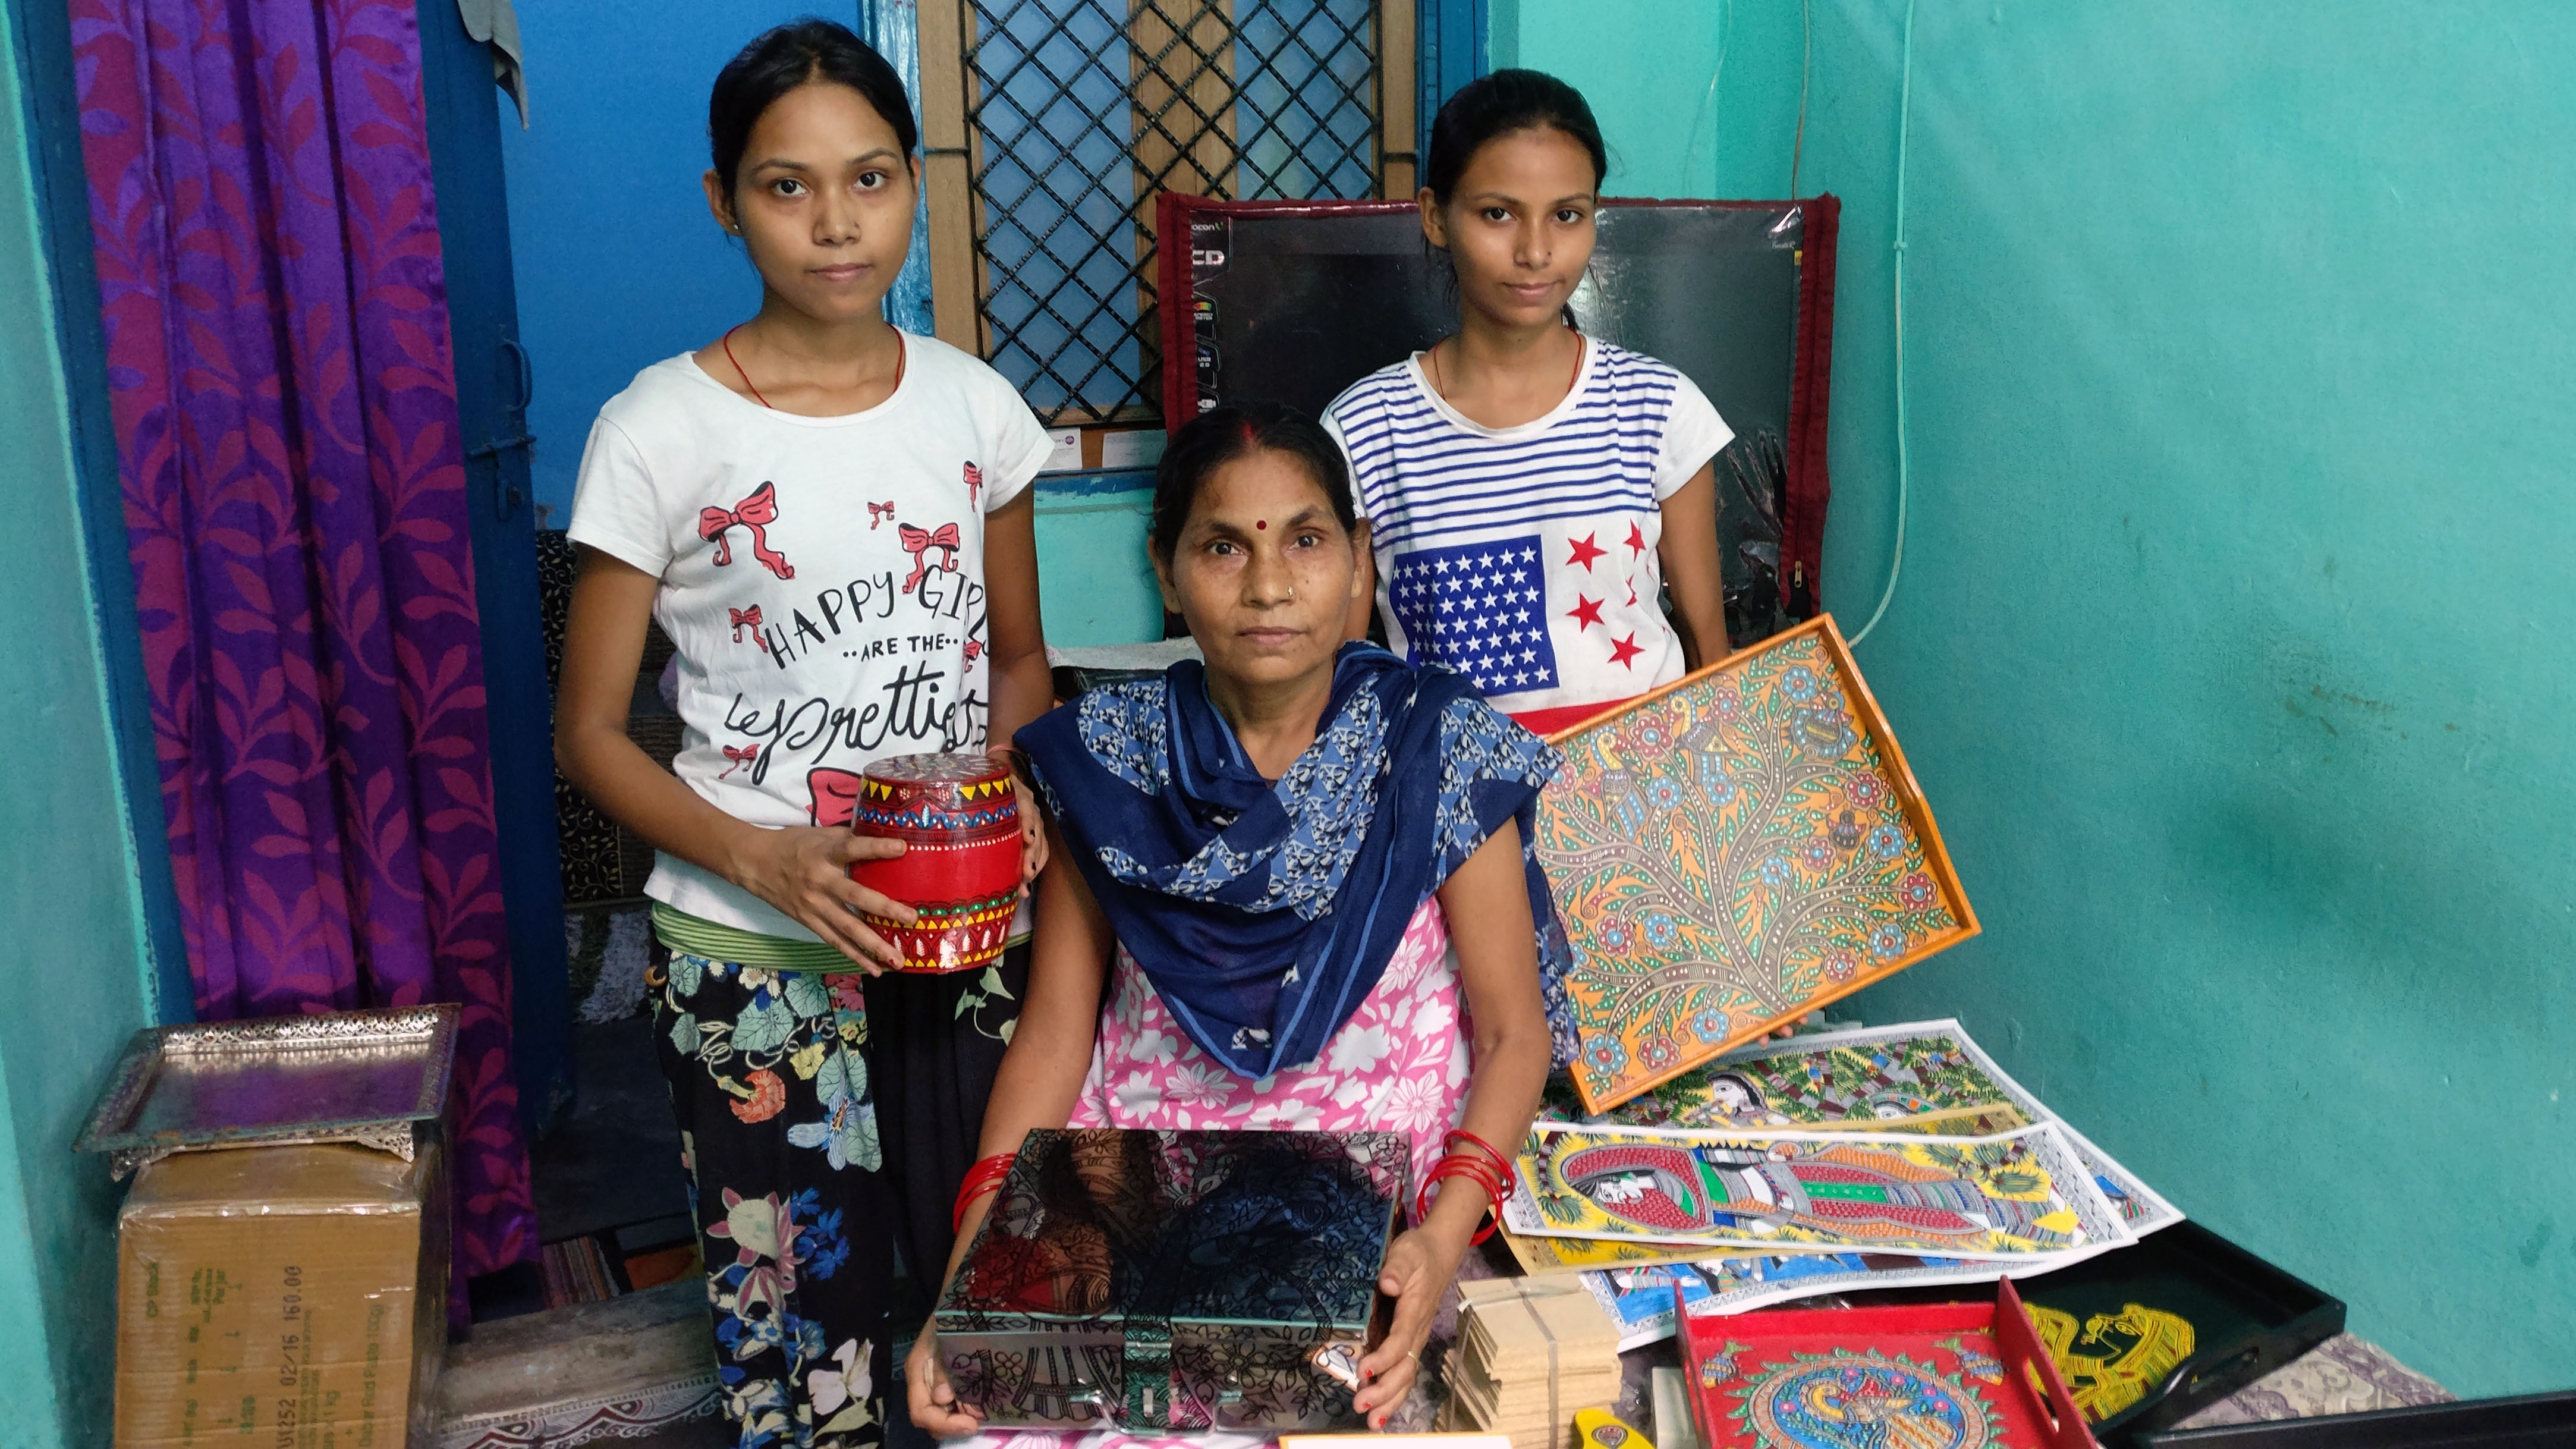 Artisans and friends and the art we love: Madhubani painting